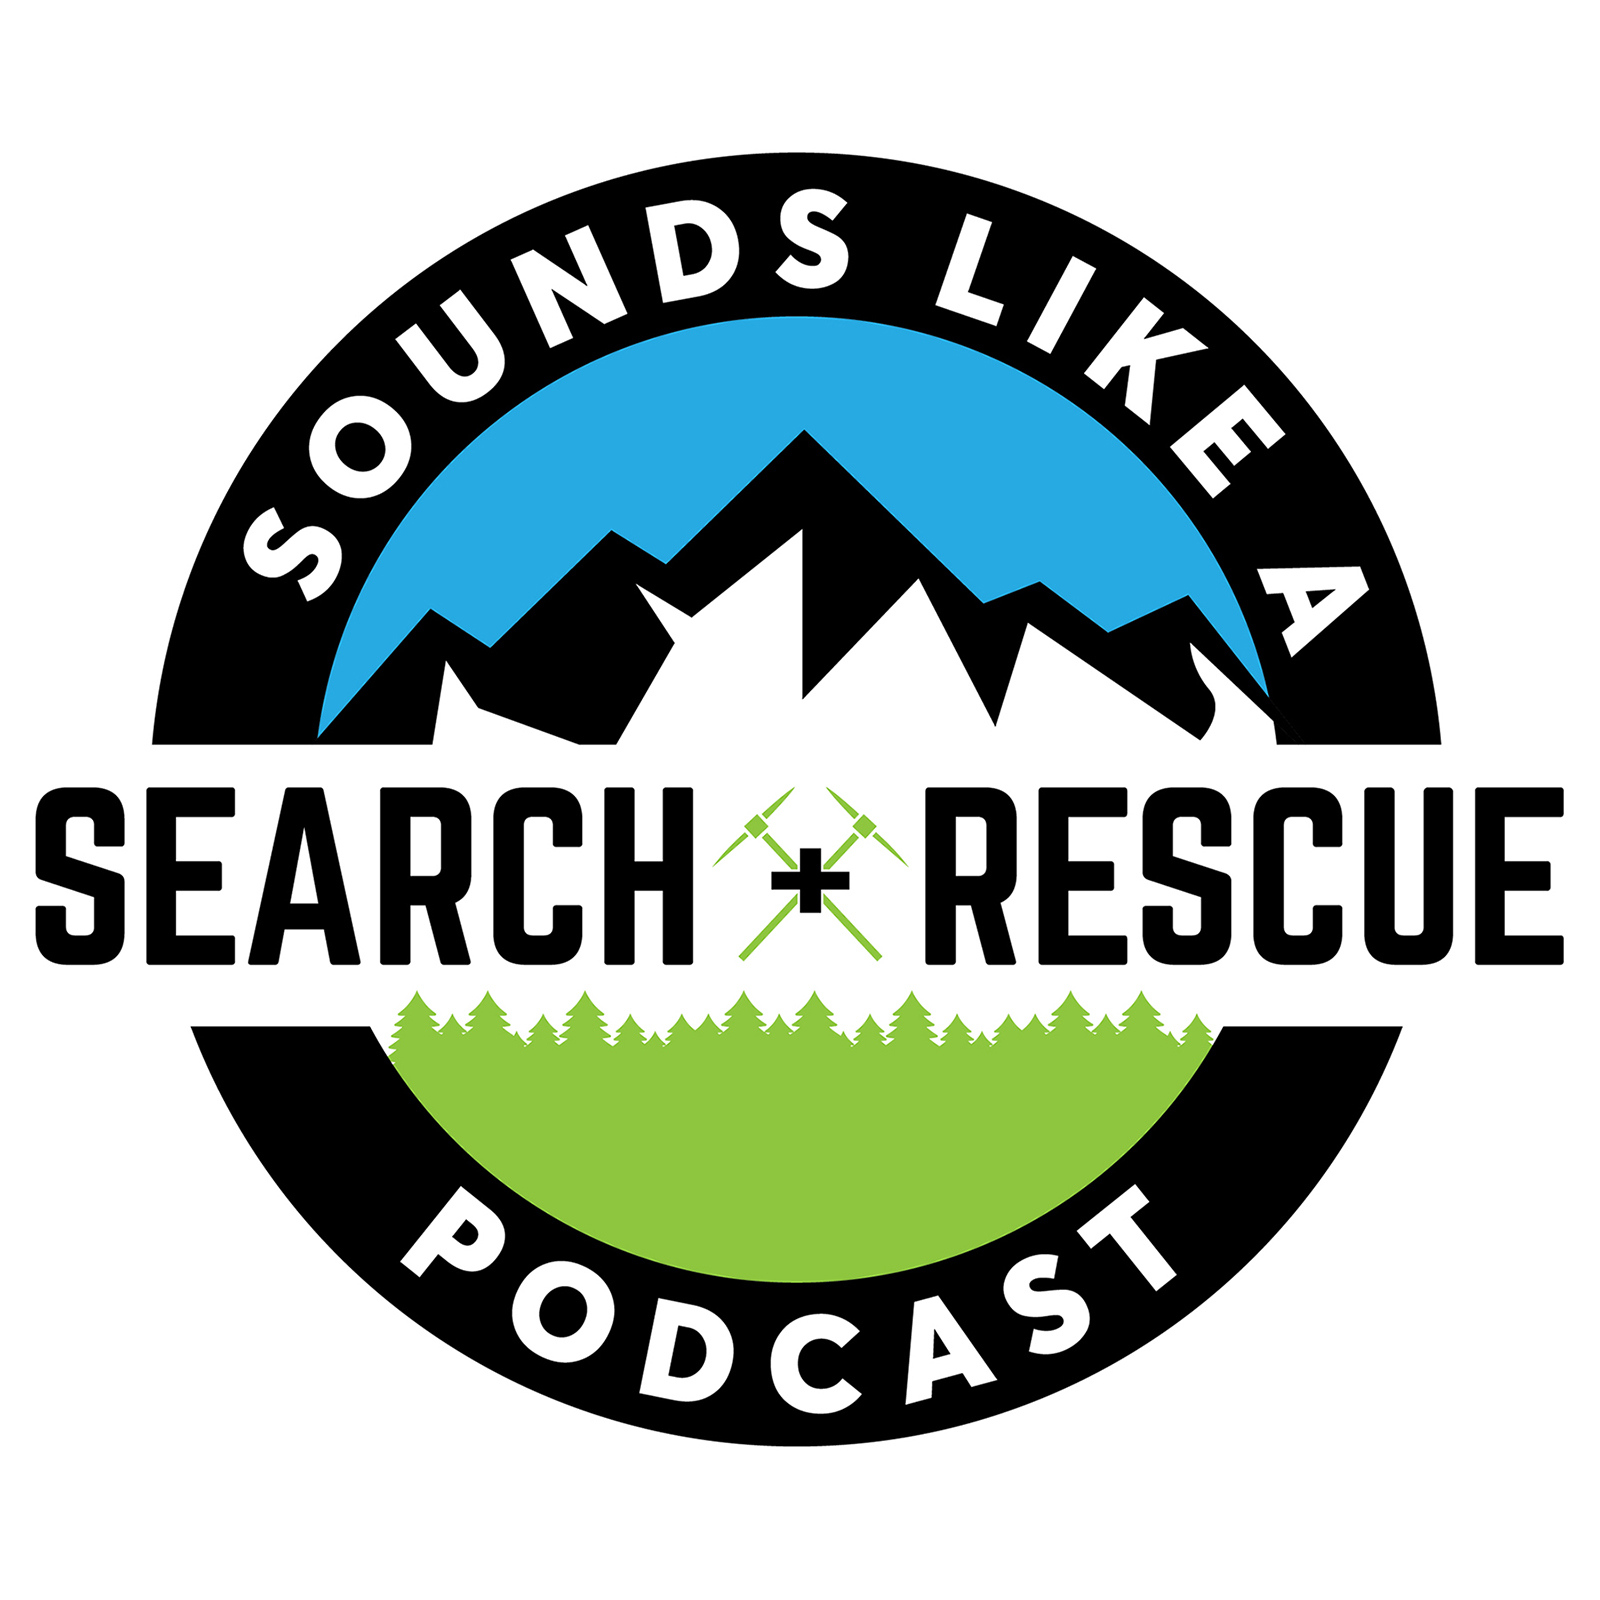 Episode 16 - Rescue on Tuckerman with Sarah and Jeff